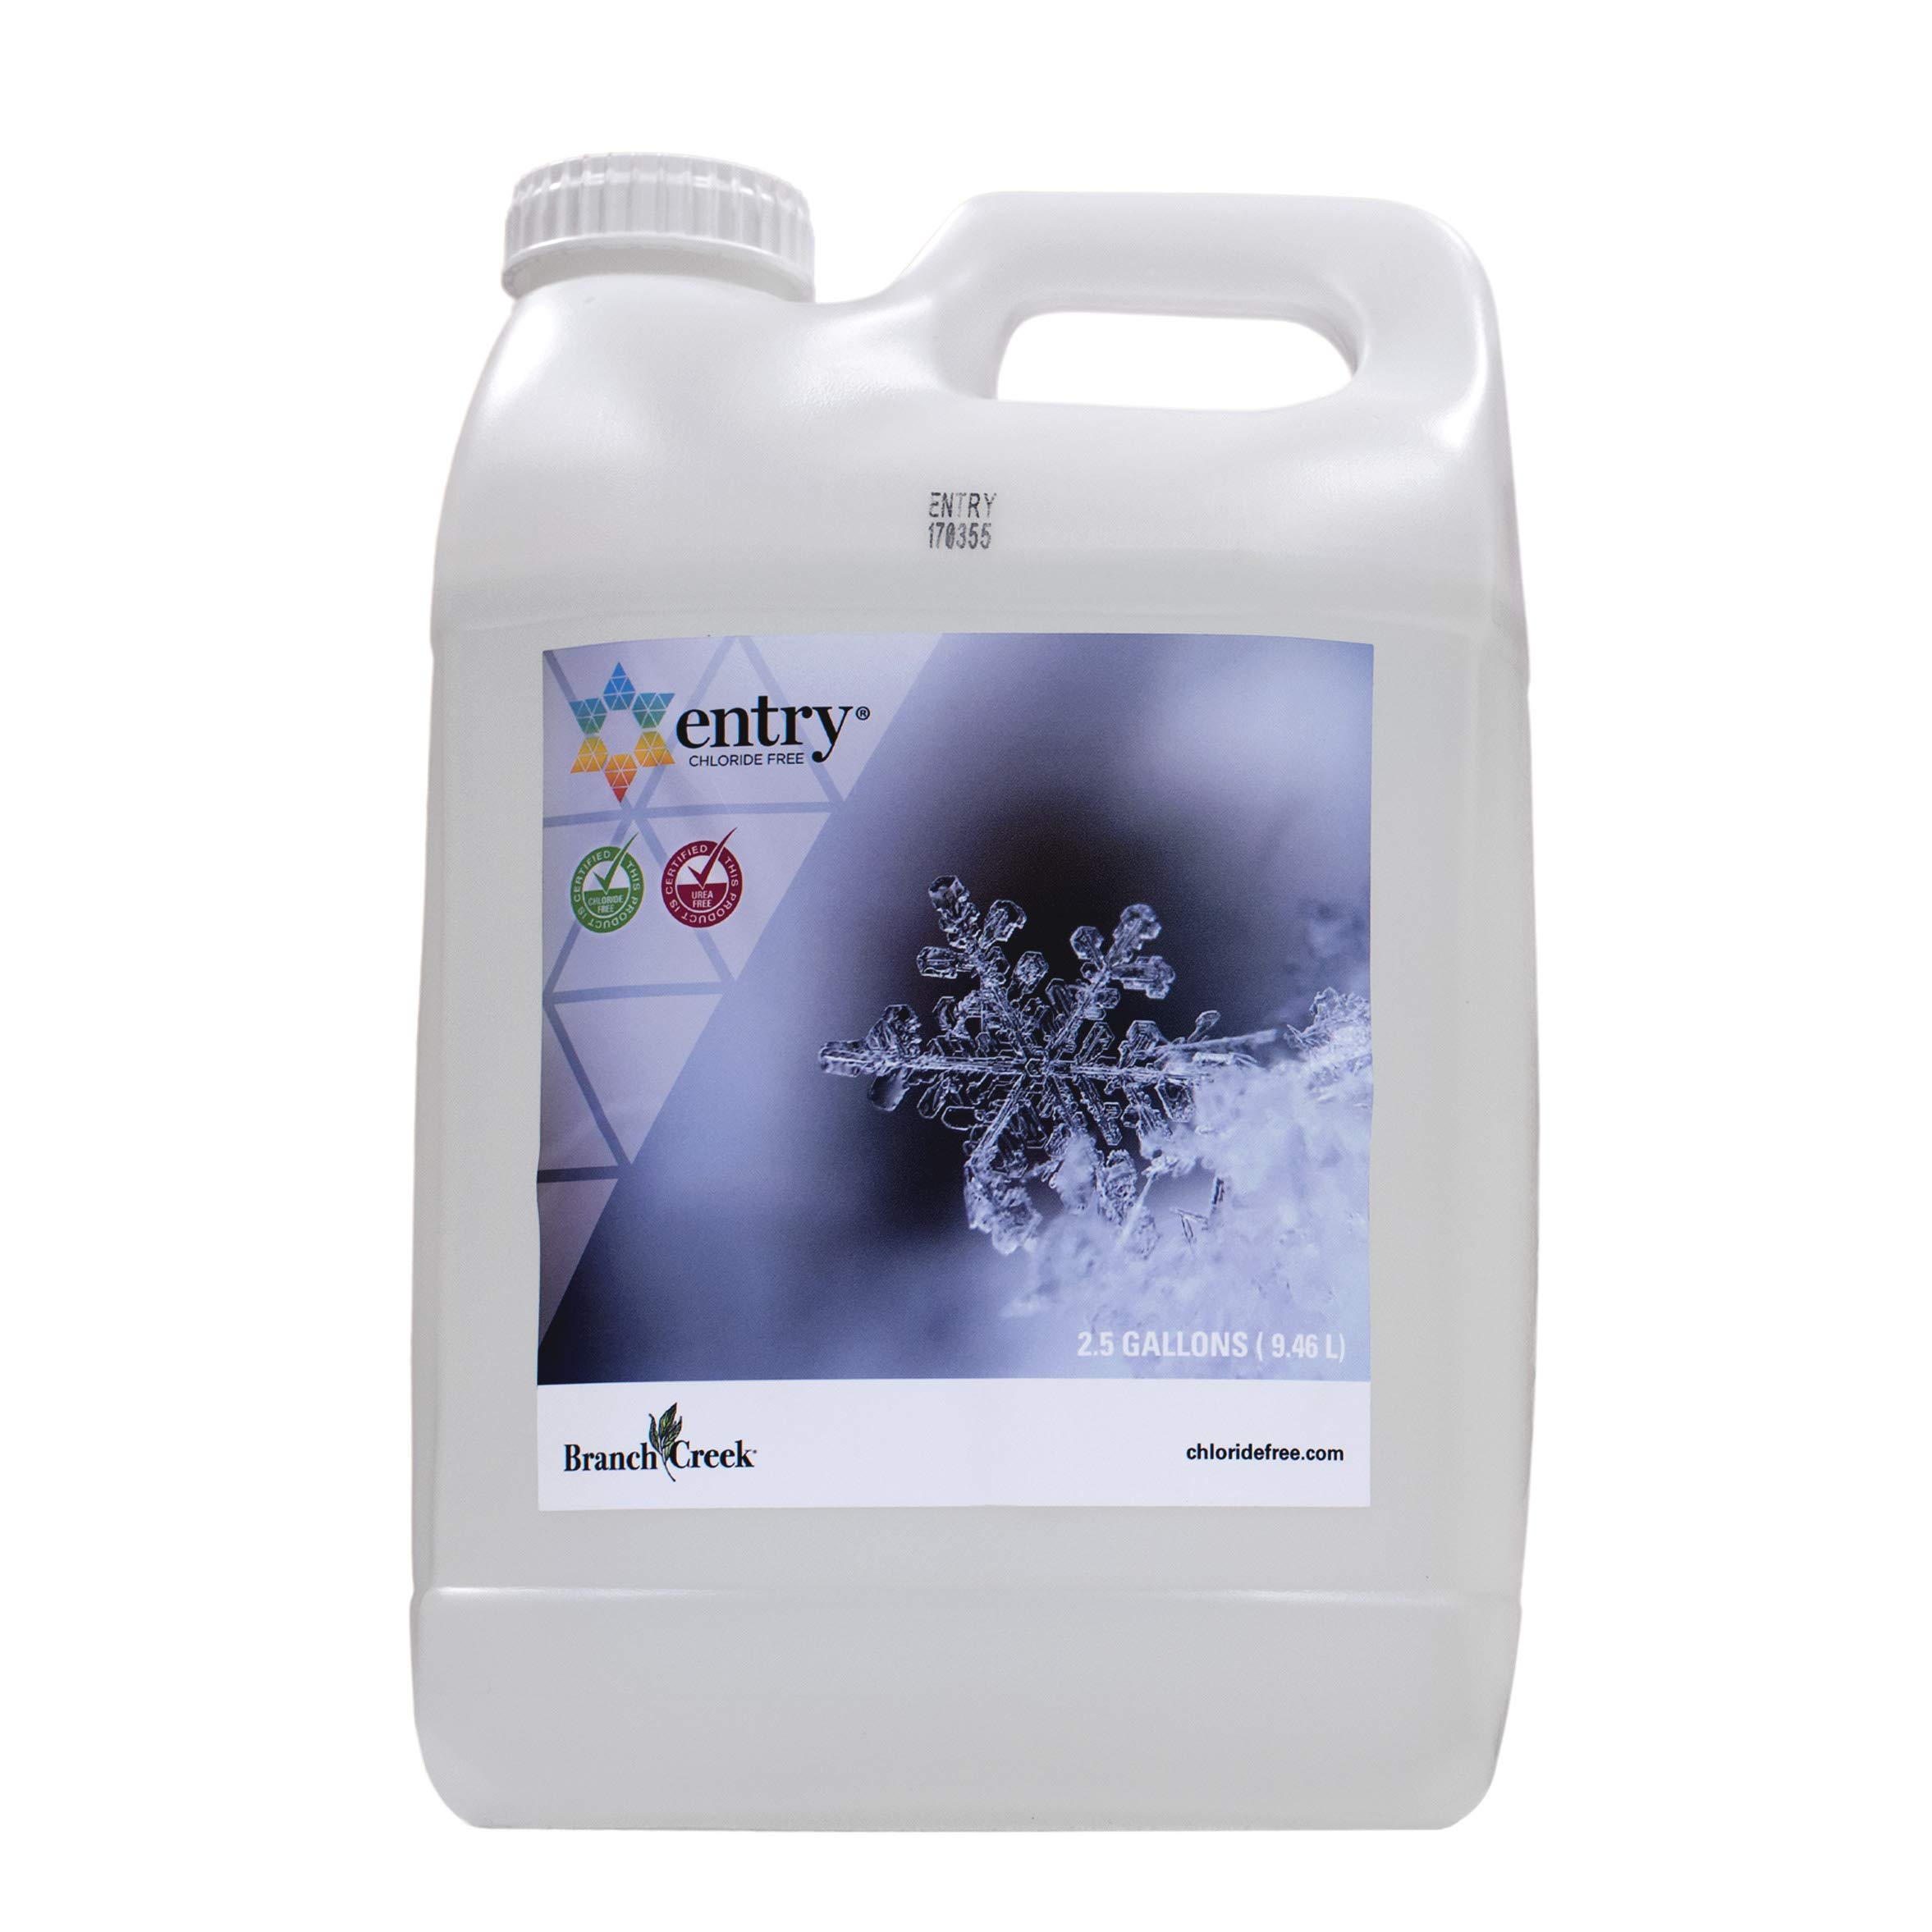 Branch Creek Entry Chloride-Free, Non-Toxic, Liquid Snow and Ice Melt Safer for Pets, Plants, Floors, Concrete, Sidewalks, and Metal for Residential or Commercial Use (2.5 Gallon) by Branch Creek